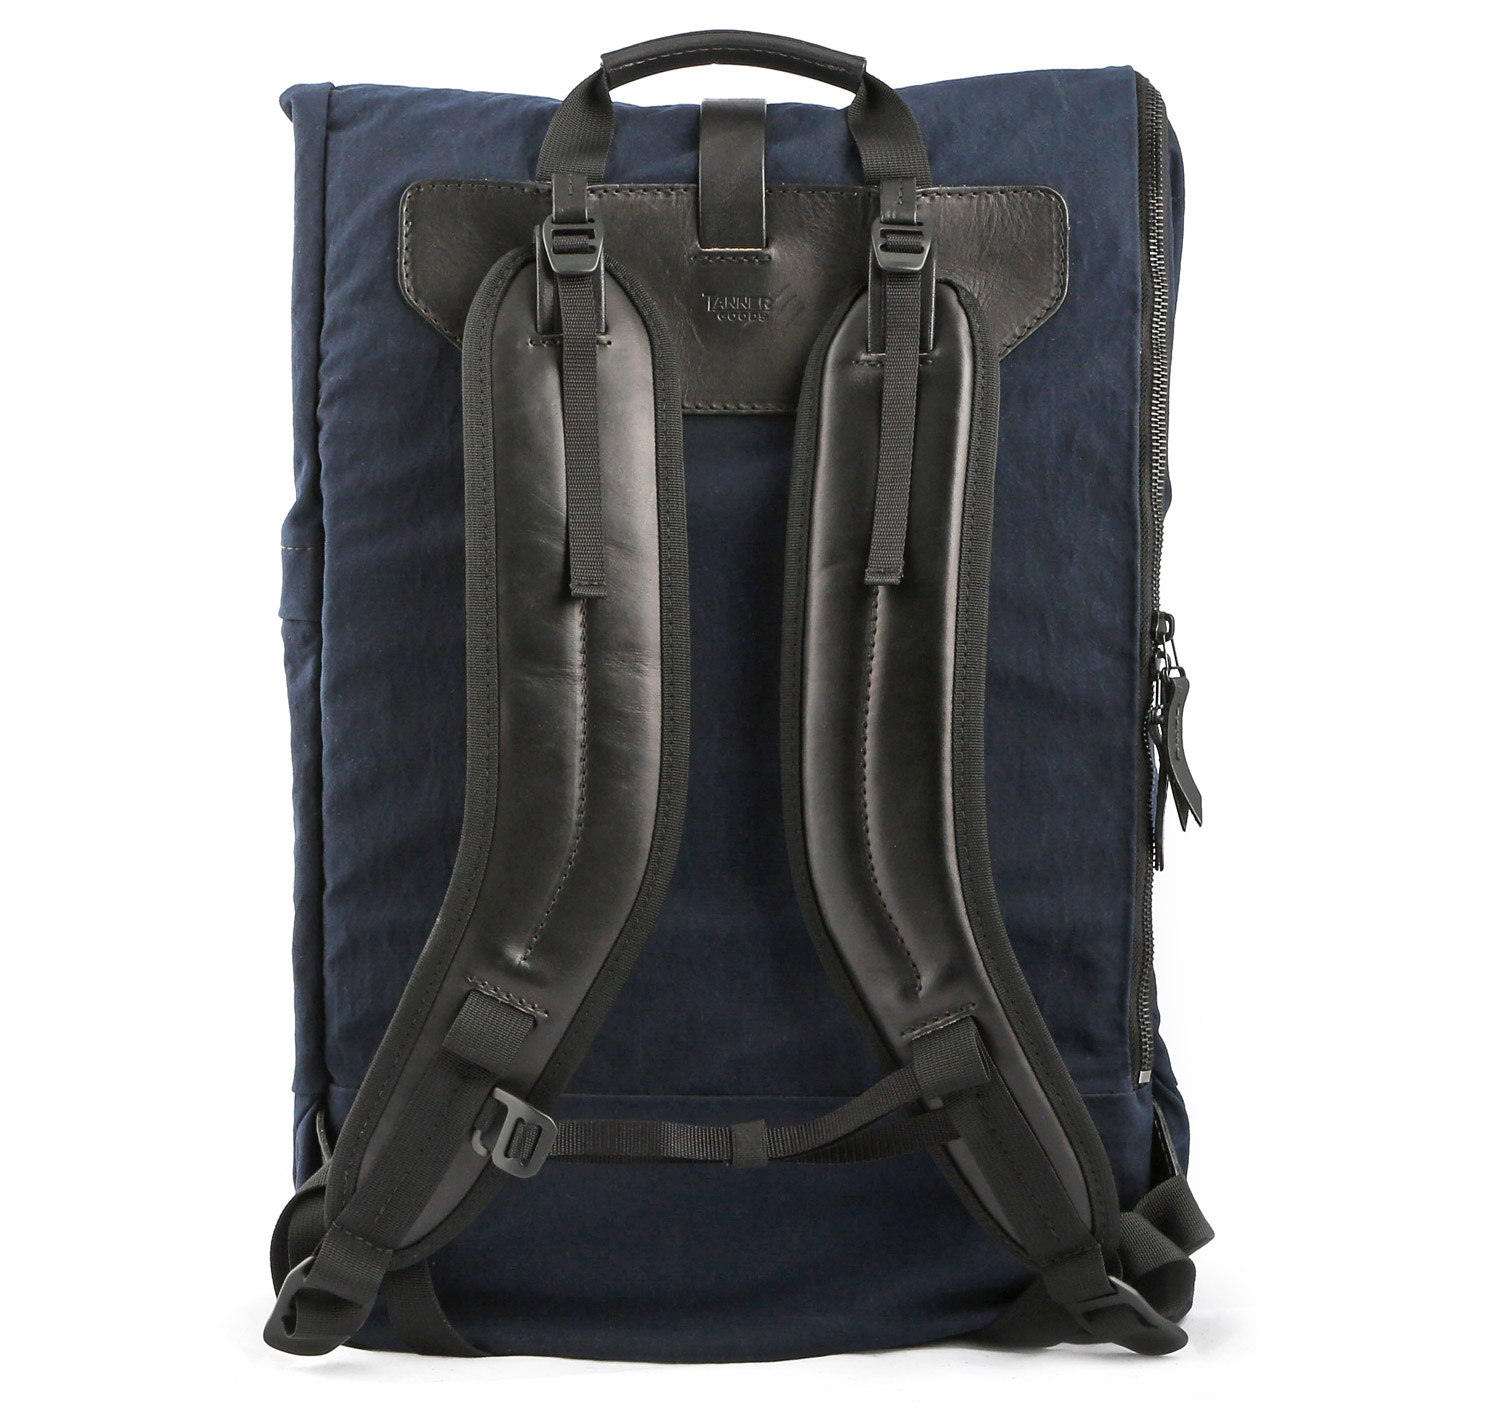 The backside of a navy blue backpack with black straps and accents.